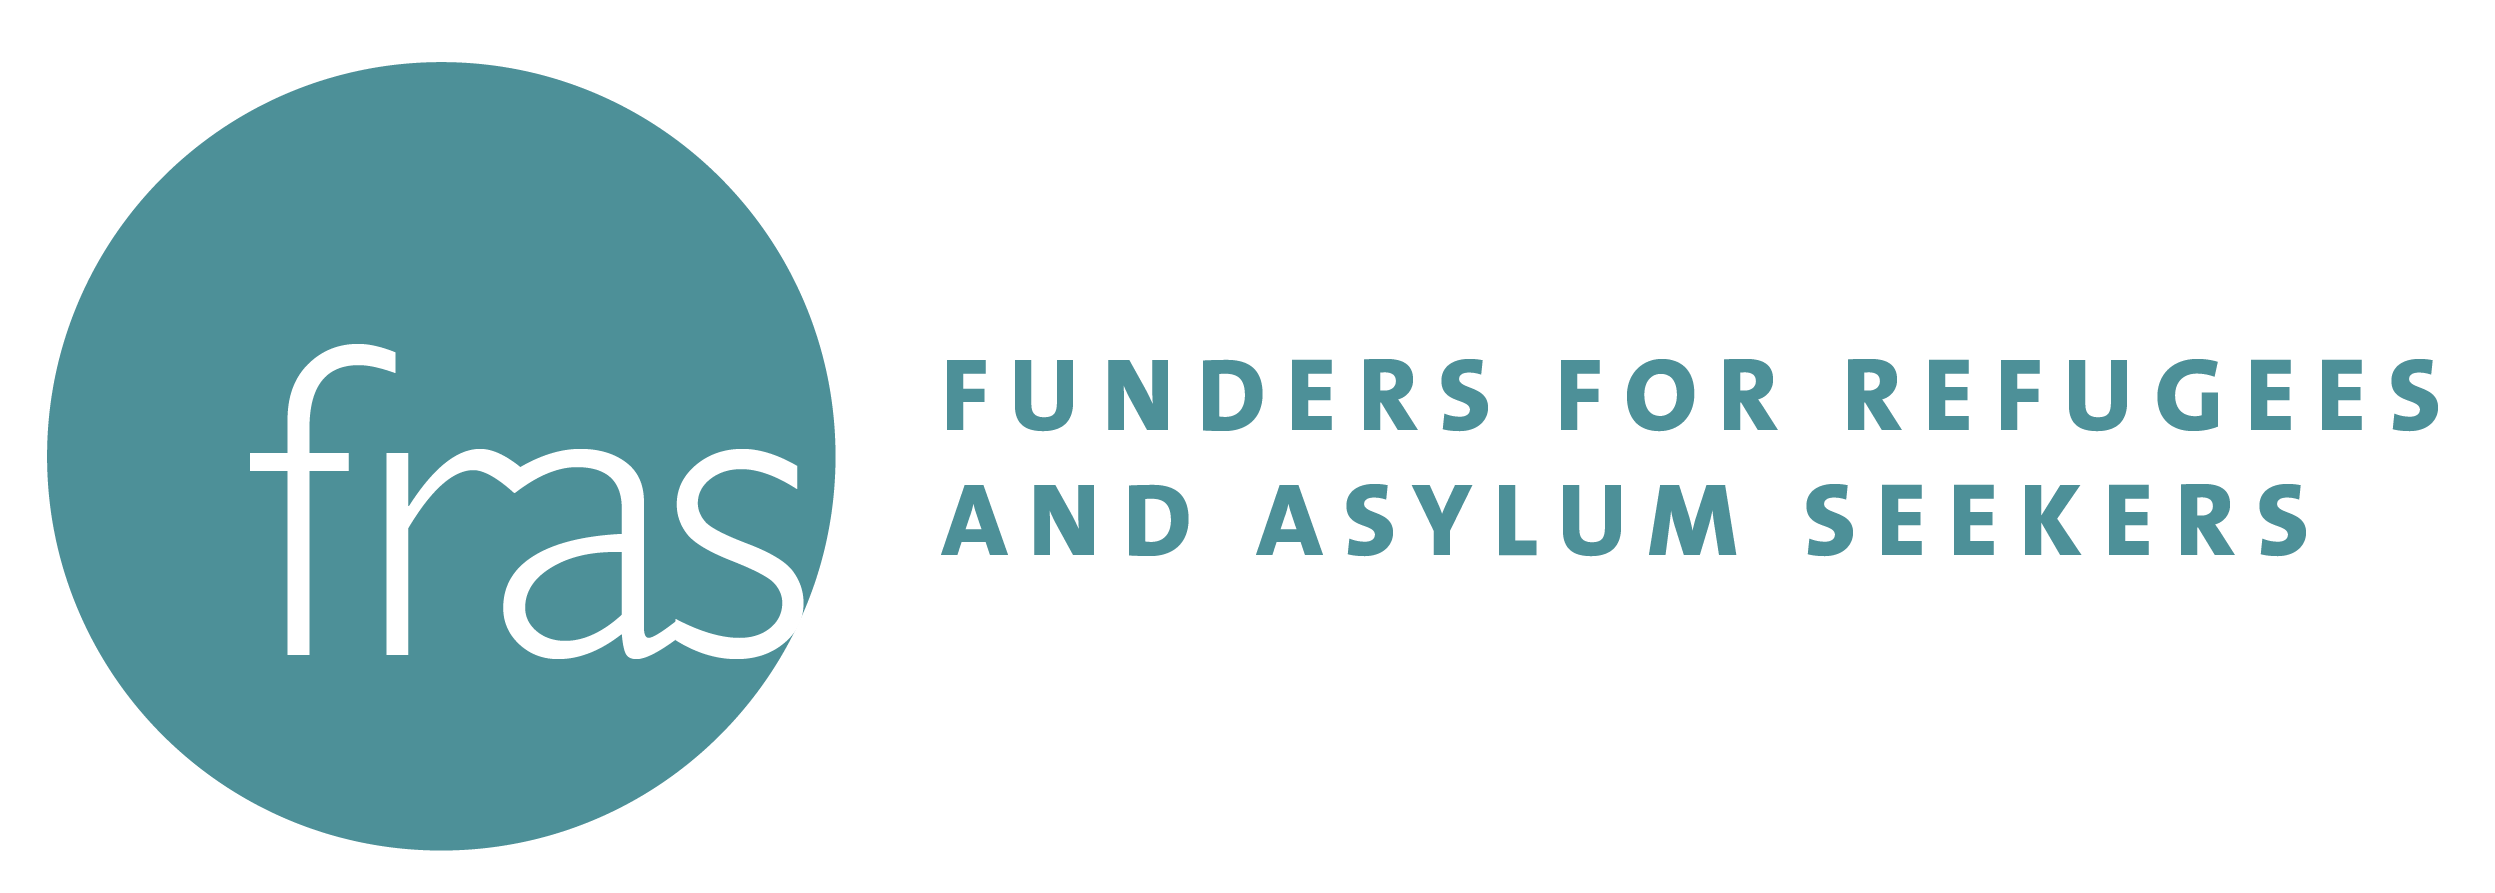 The Funders for Refugees and Asylum Seekers logo, which features the acronym in white letters in an aquamarine circle, with the full name to the right, spelled out in the same color on a white background. Posted in conjunction with GCIR's webinar, FRAS Funder Update Call.